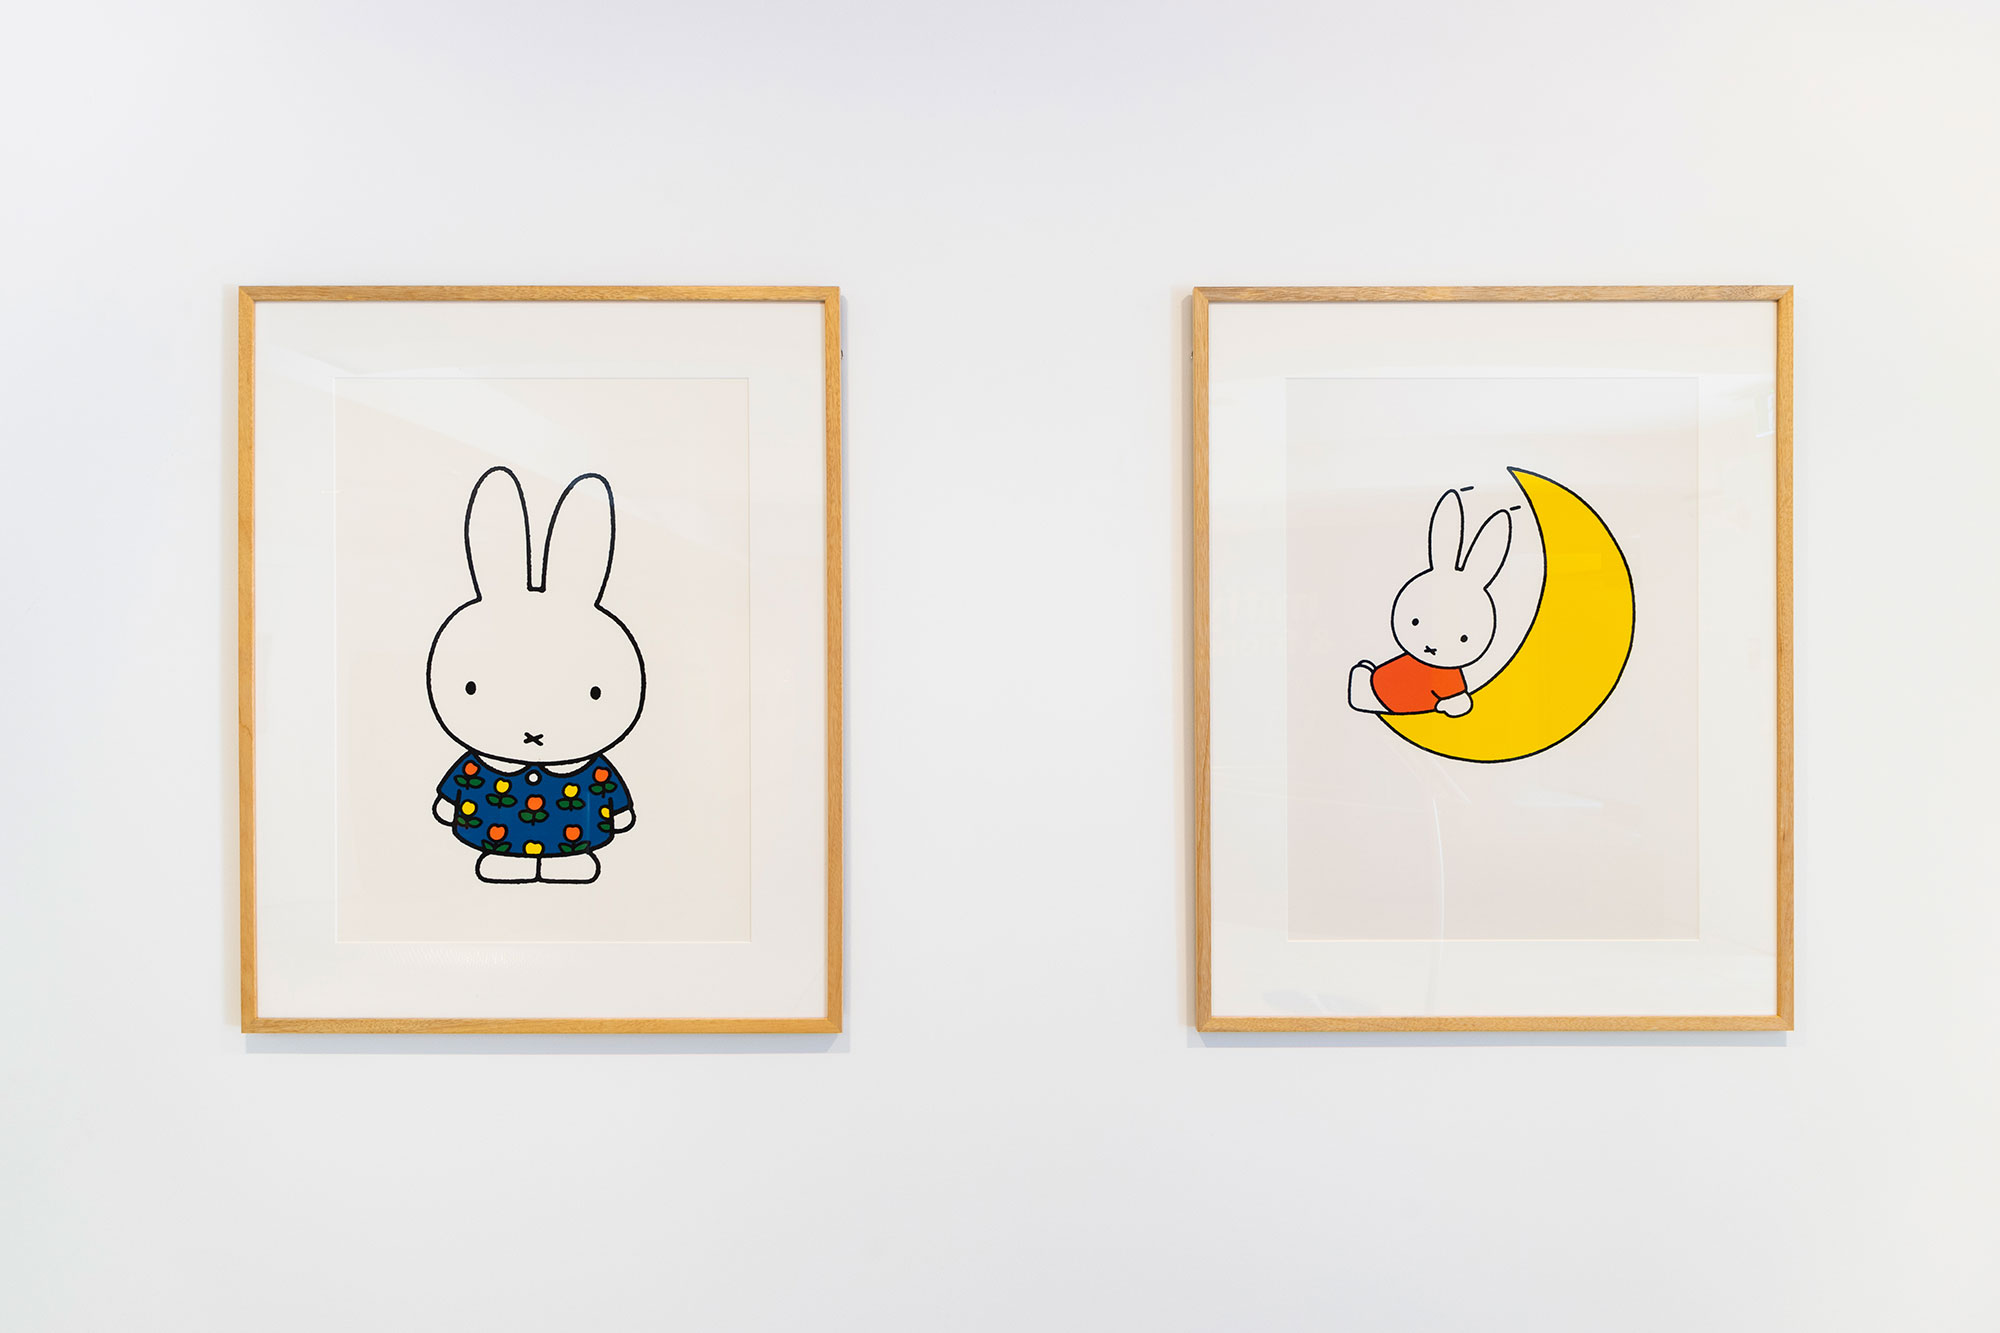 Installation view of 'miffy & friends' (21 November 2020 - 14 March 2021), QUT Art Museum. Photo by Louis Lim